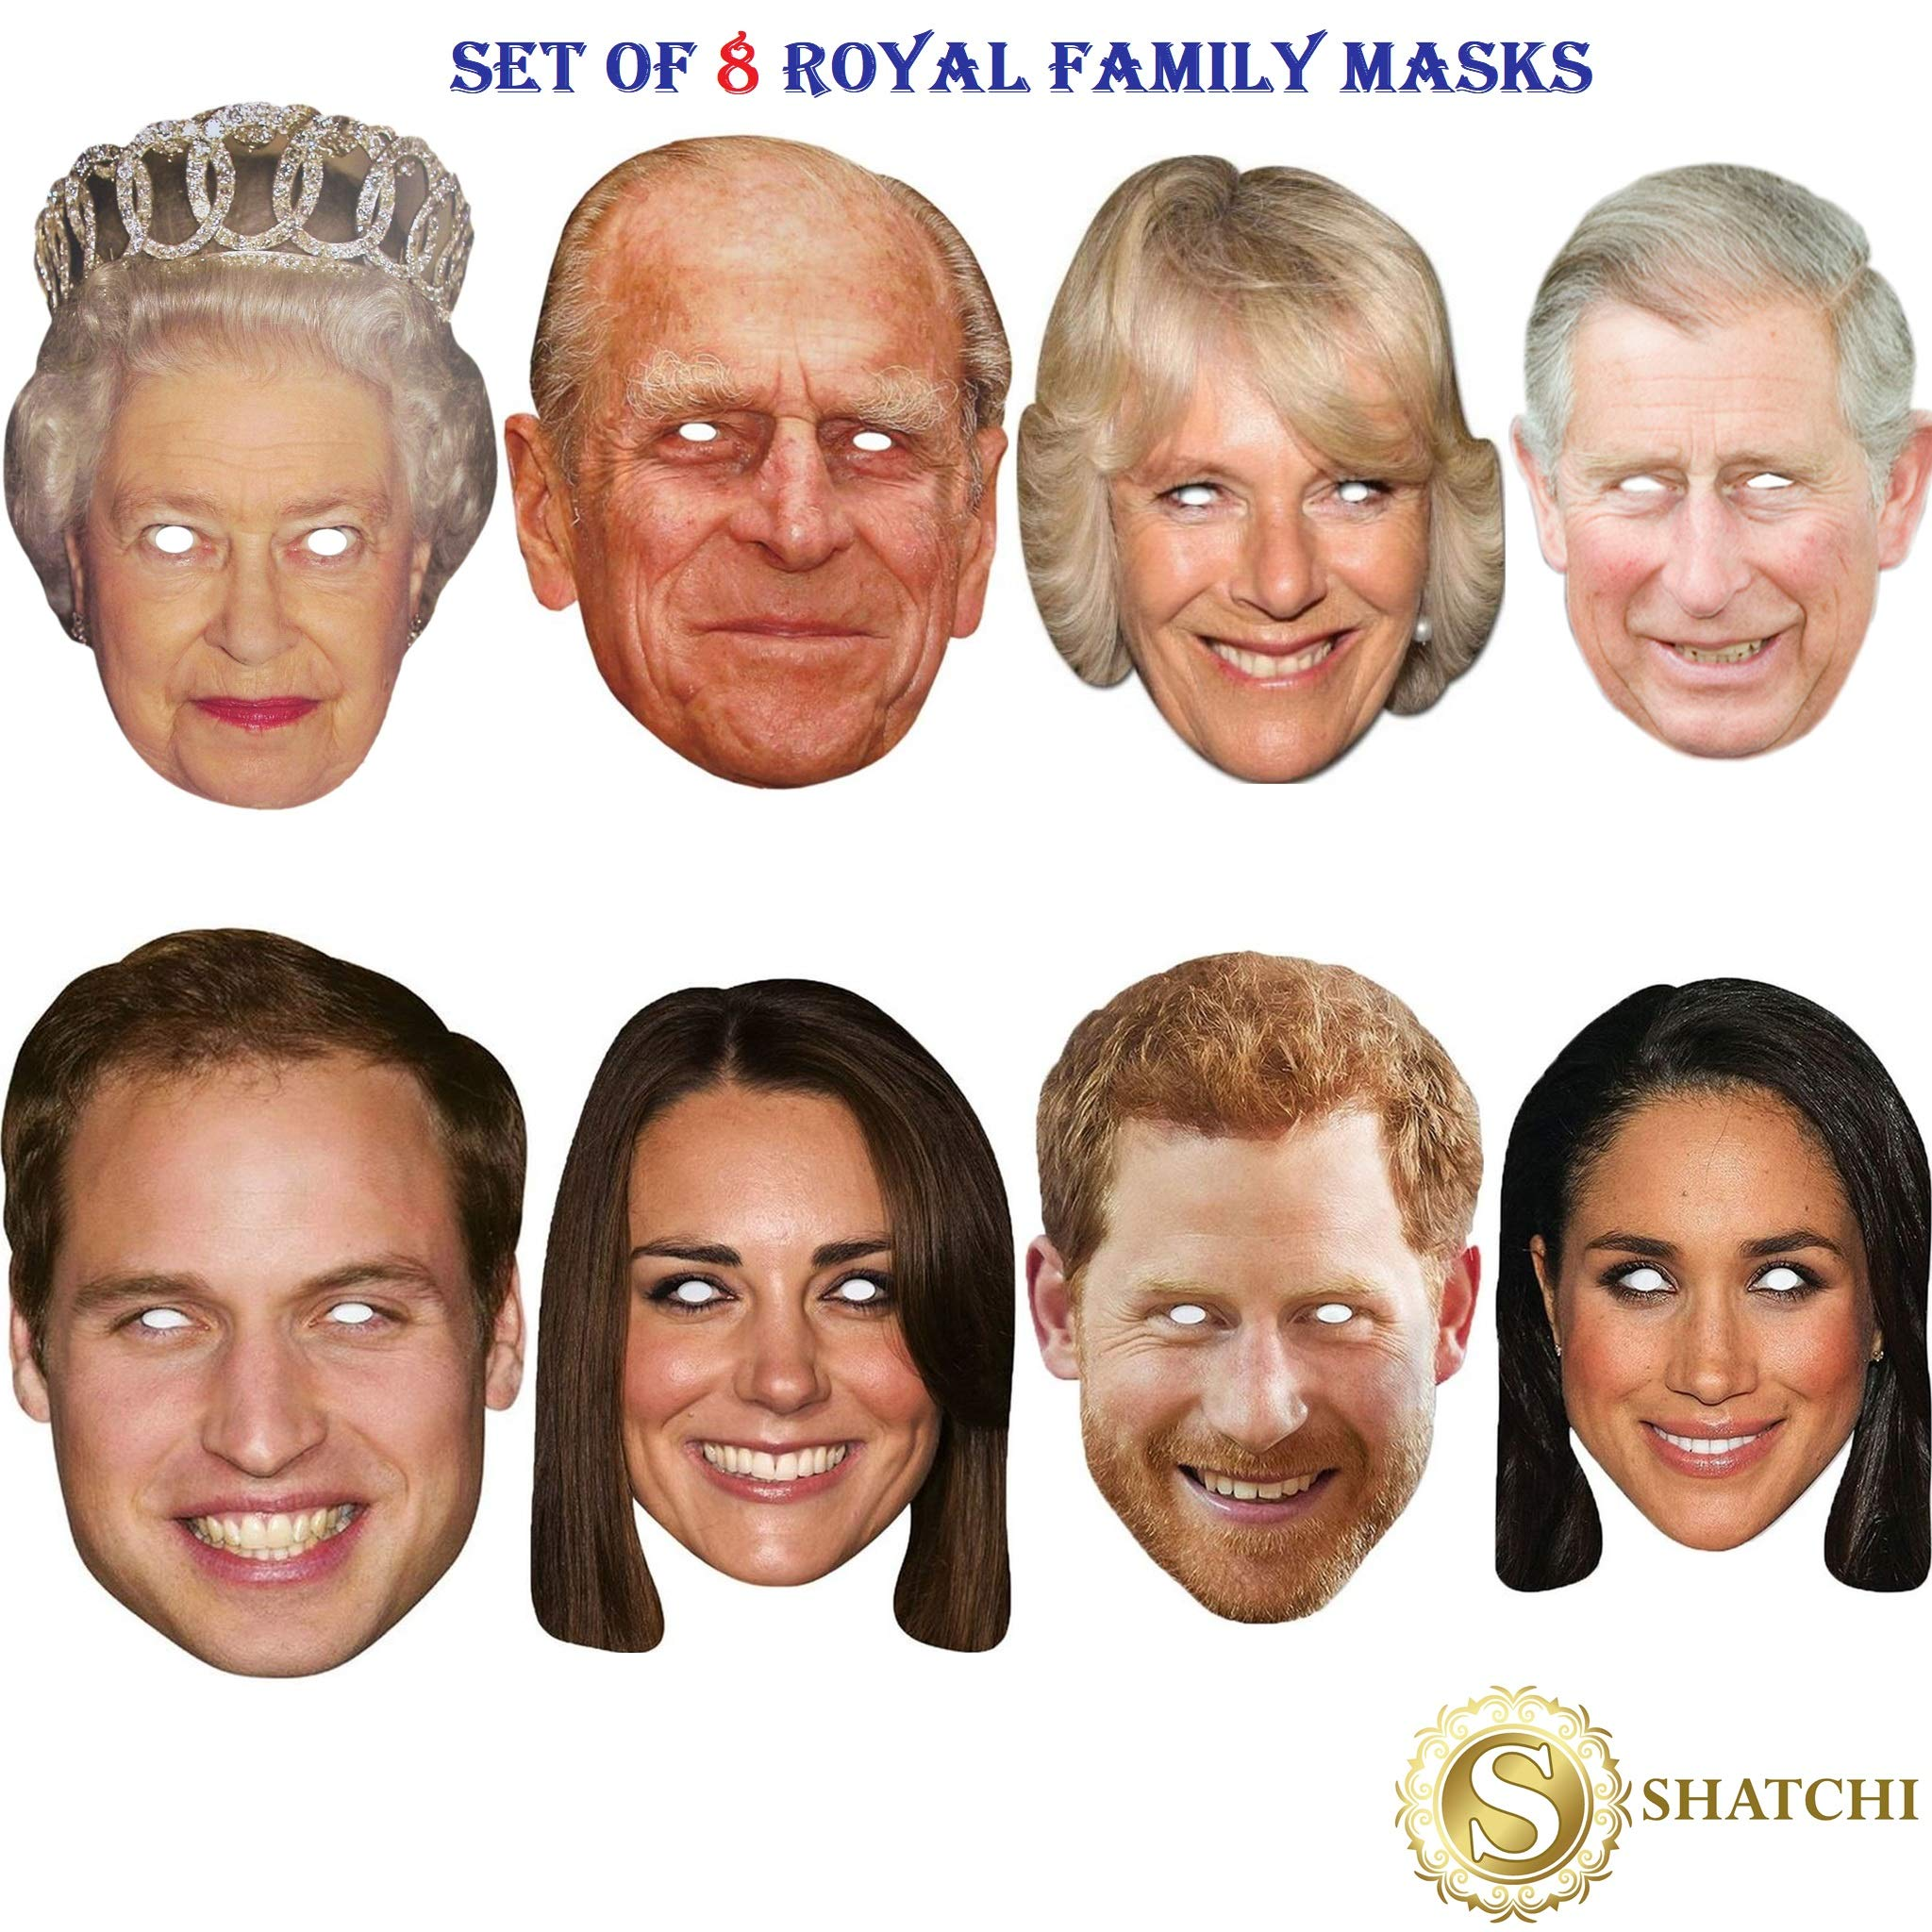 SHATCHI 11780 8 Pack Royal Family Queen Phillip Kate William Harry Charles Camilla Meghan Wedding Jubilee Supplies Celebrities Face Mask Hen and Stag Parties Fancy Dress, Multi